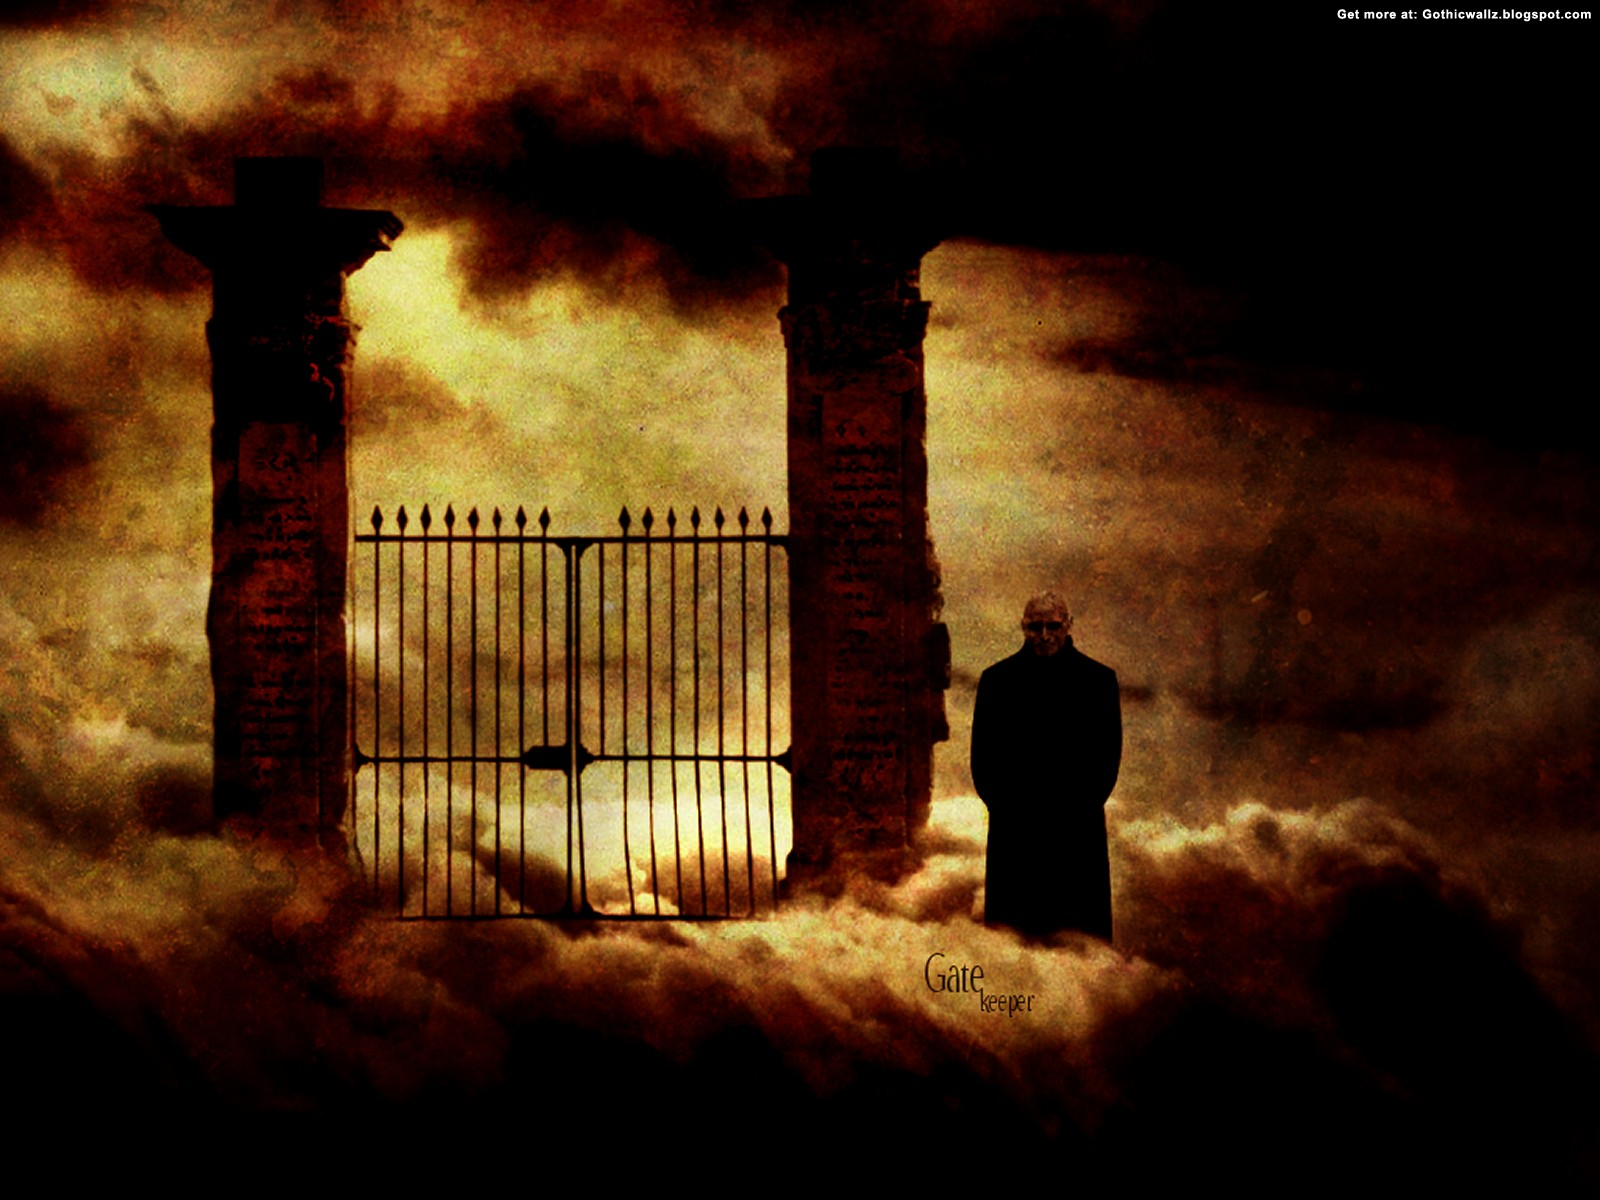 Gate keeper | Gothic Wallpaper Download